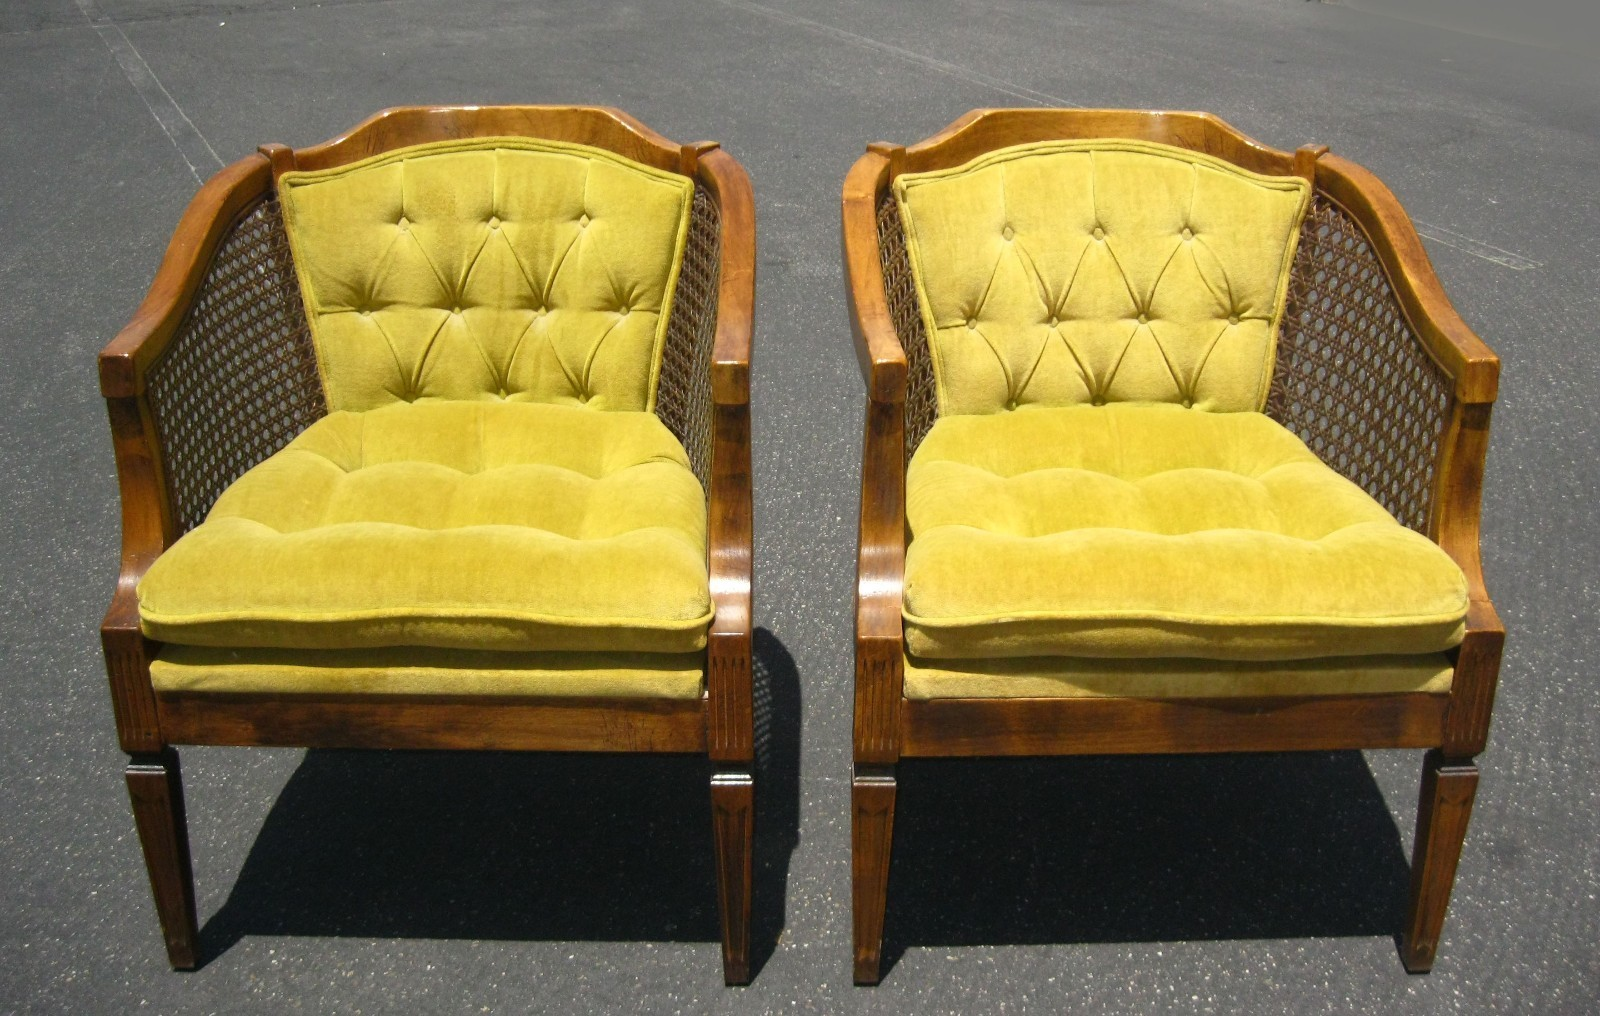 tufted yellow chair adult portable potty there s always ebay holy city chic